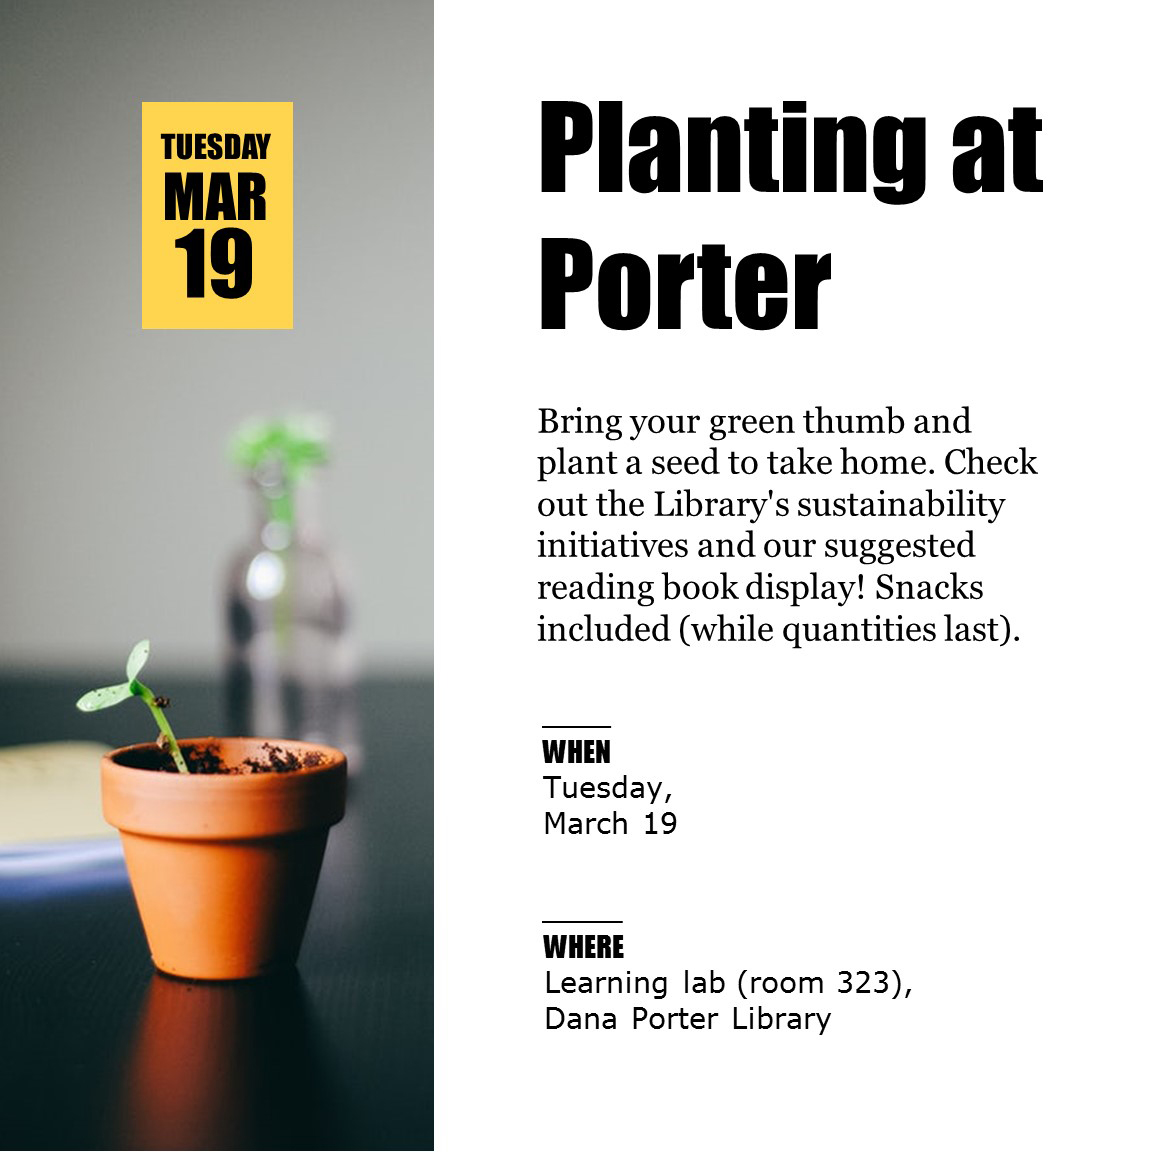 Planting at Porter